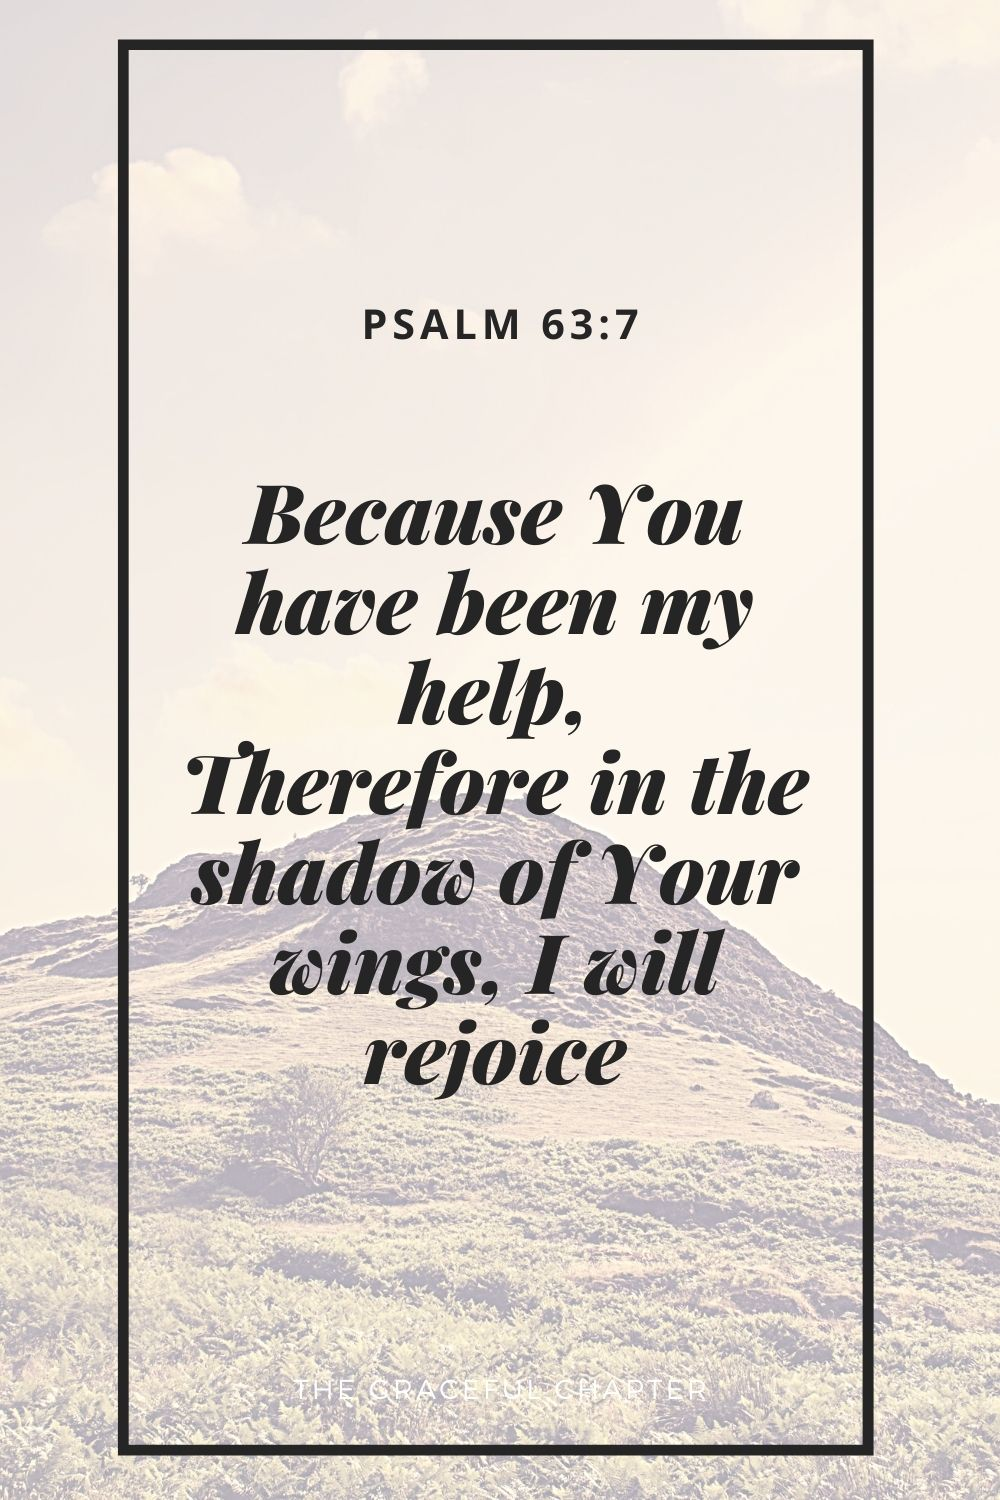 Because You have been my help, Therefore in the shadow of Your wings, I will rejoice. Psalm 63:7